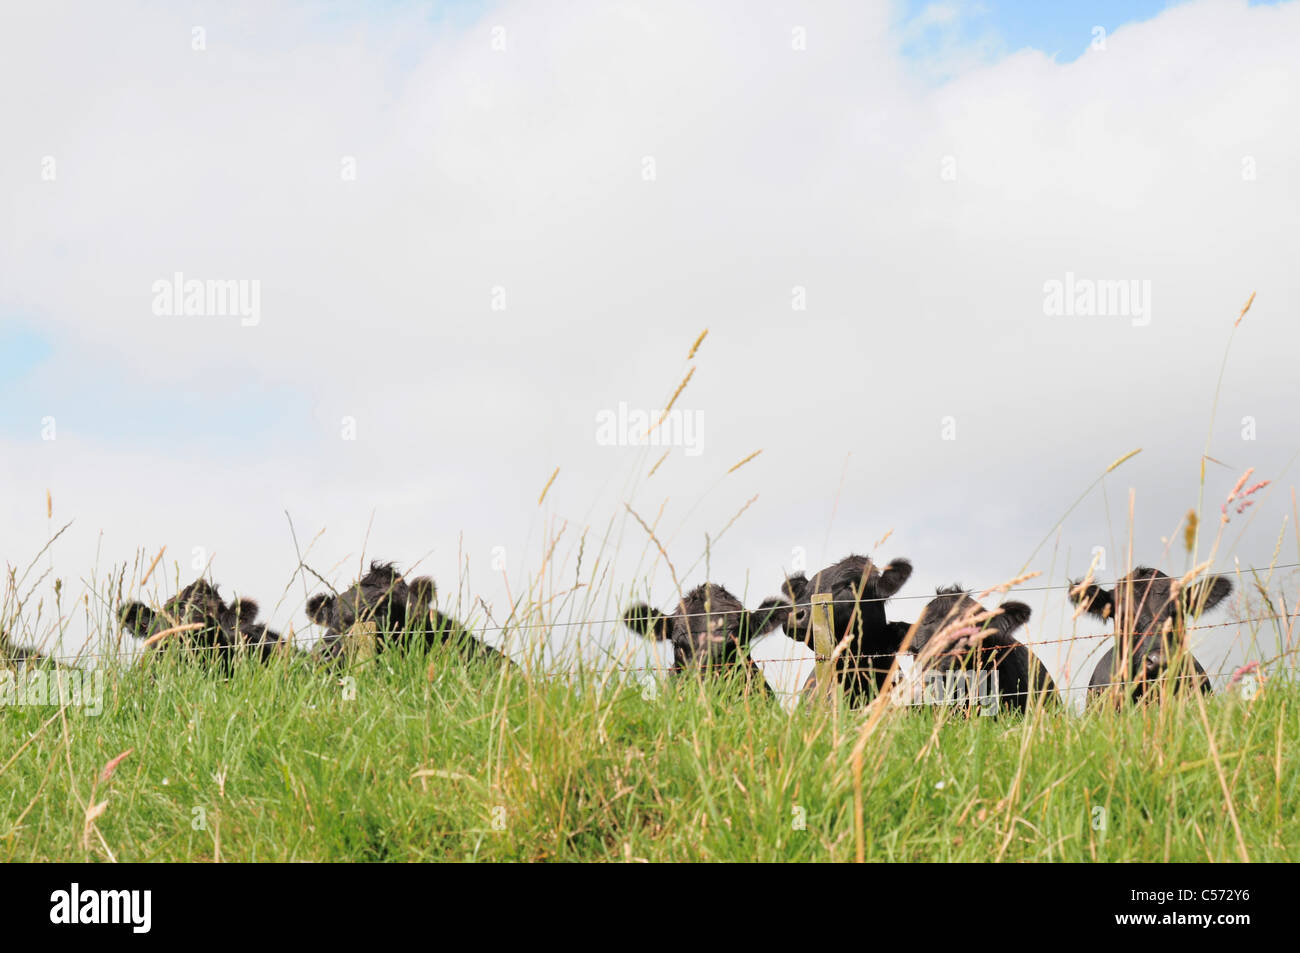 Cows in fenced field - Stock Image